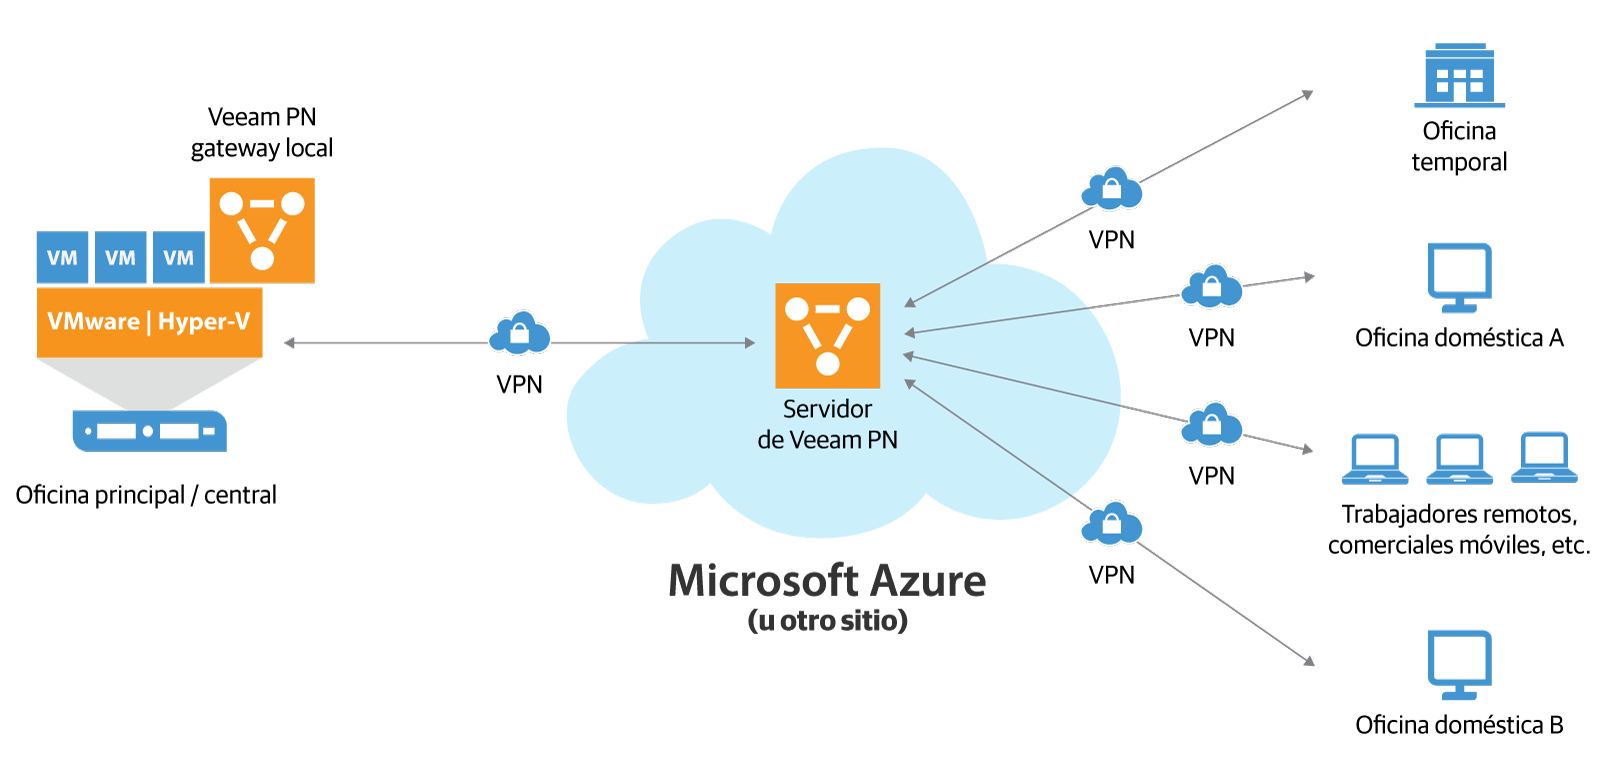 El diagrama superior representa una conexión punto a punto entre los clientes remotos y la oficina principal a través del appliance virtual Veeam PN para Microsoft Azure ubicado en Microsoft Azure, y el appliance virtual de gateway local de Veeam PN ubicado en la oficina principal. (VPN = virtual private network; Veeam PN = Veeam Powered Network)